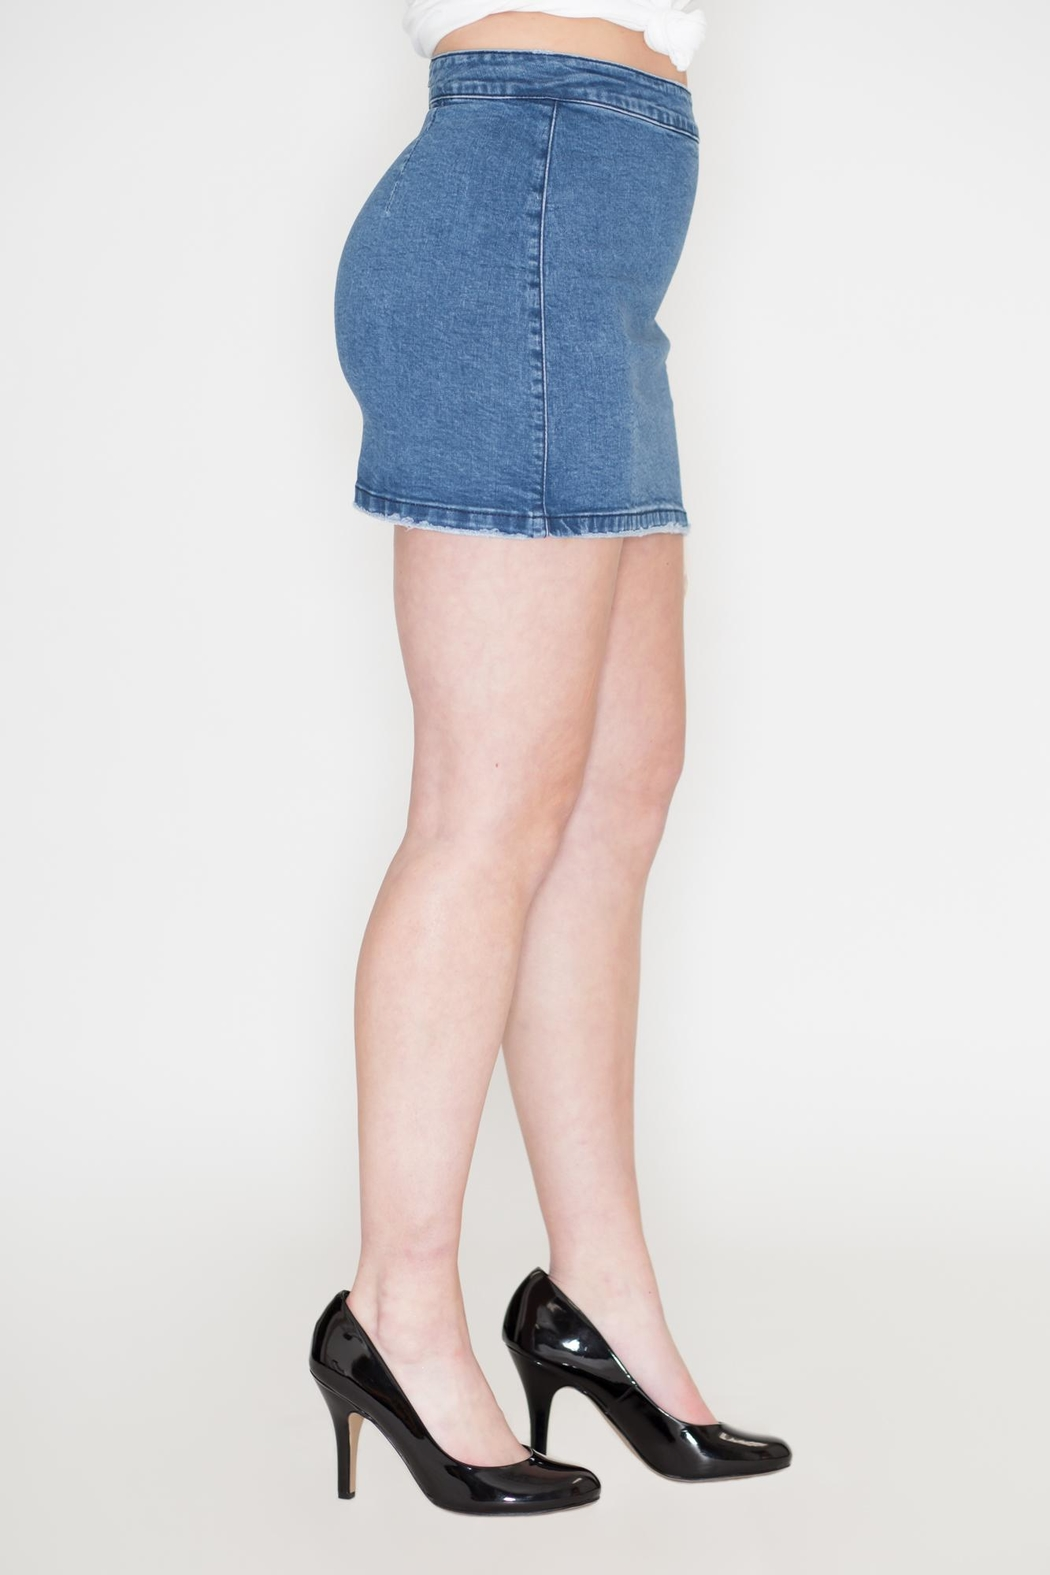 c21a2f98ddd Listicle Lace-Up Denim Skirt from Philadelphia by May 23 — Shoptiques